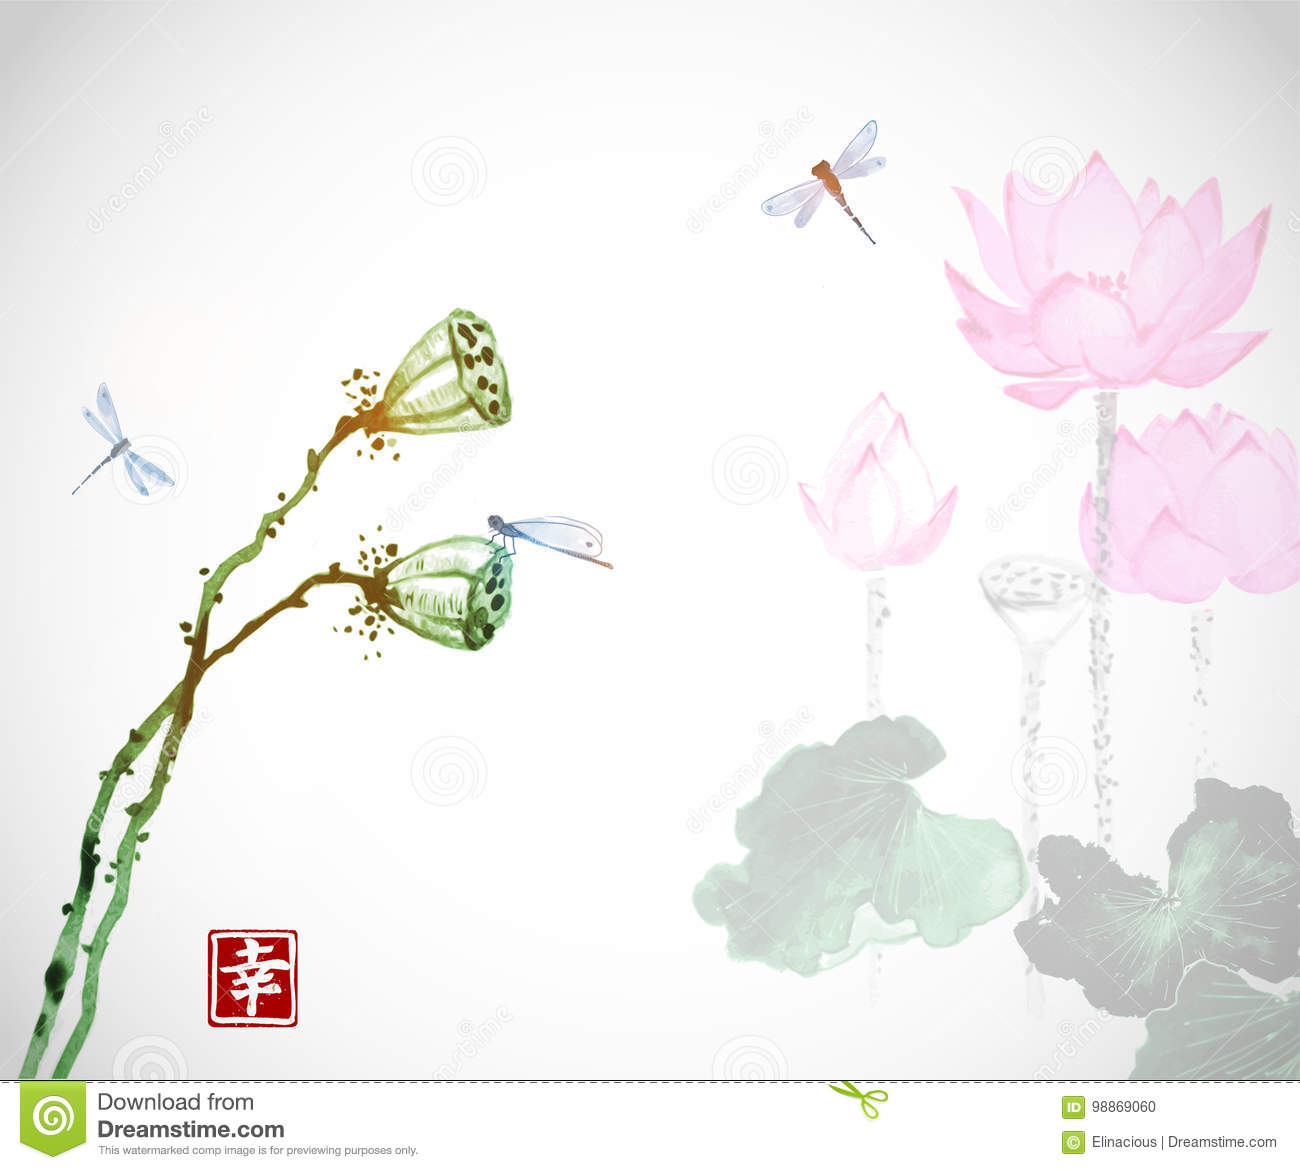 617fbd45e Lotus flowers and dragonflies on white background. Traditional oriental ink  painting sumi-e,